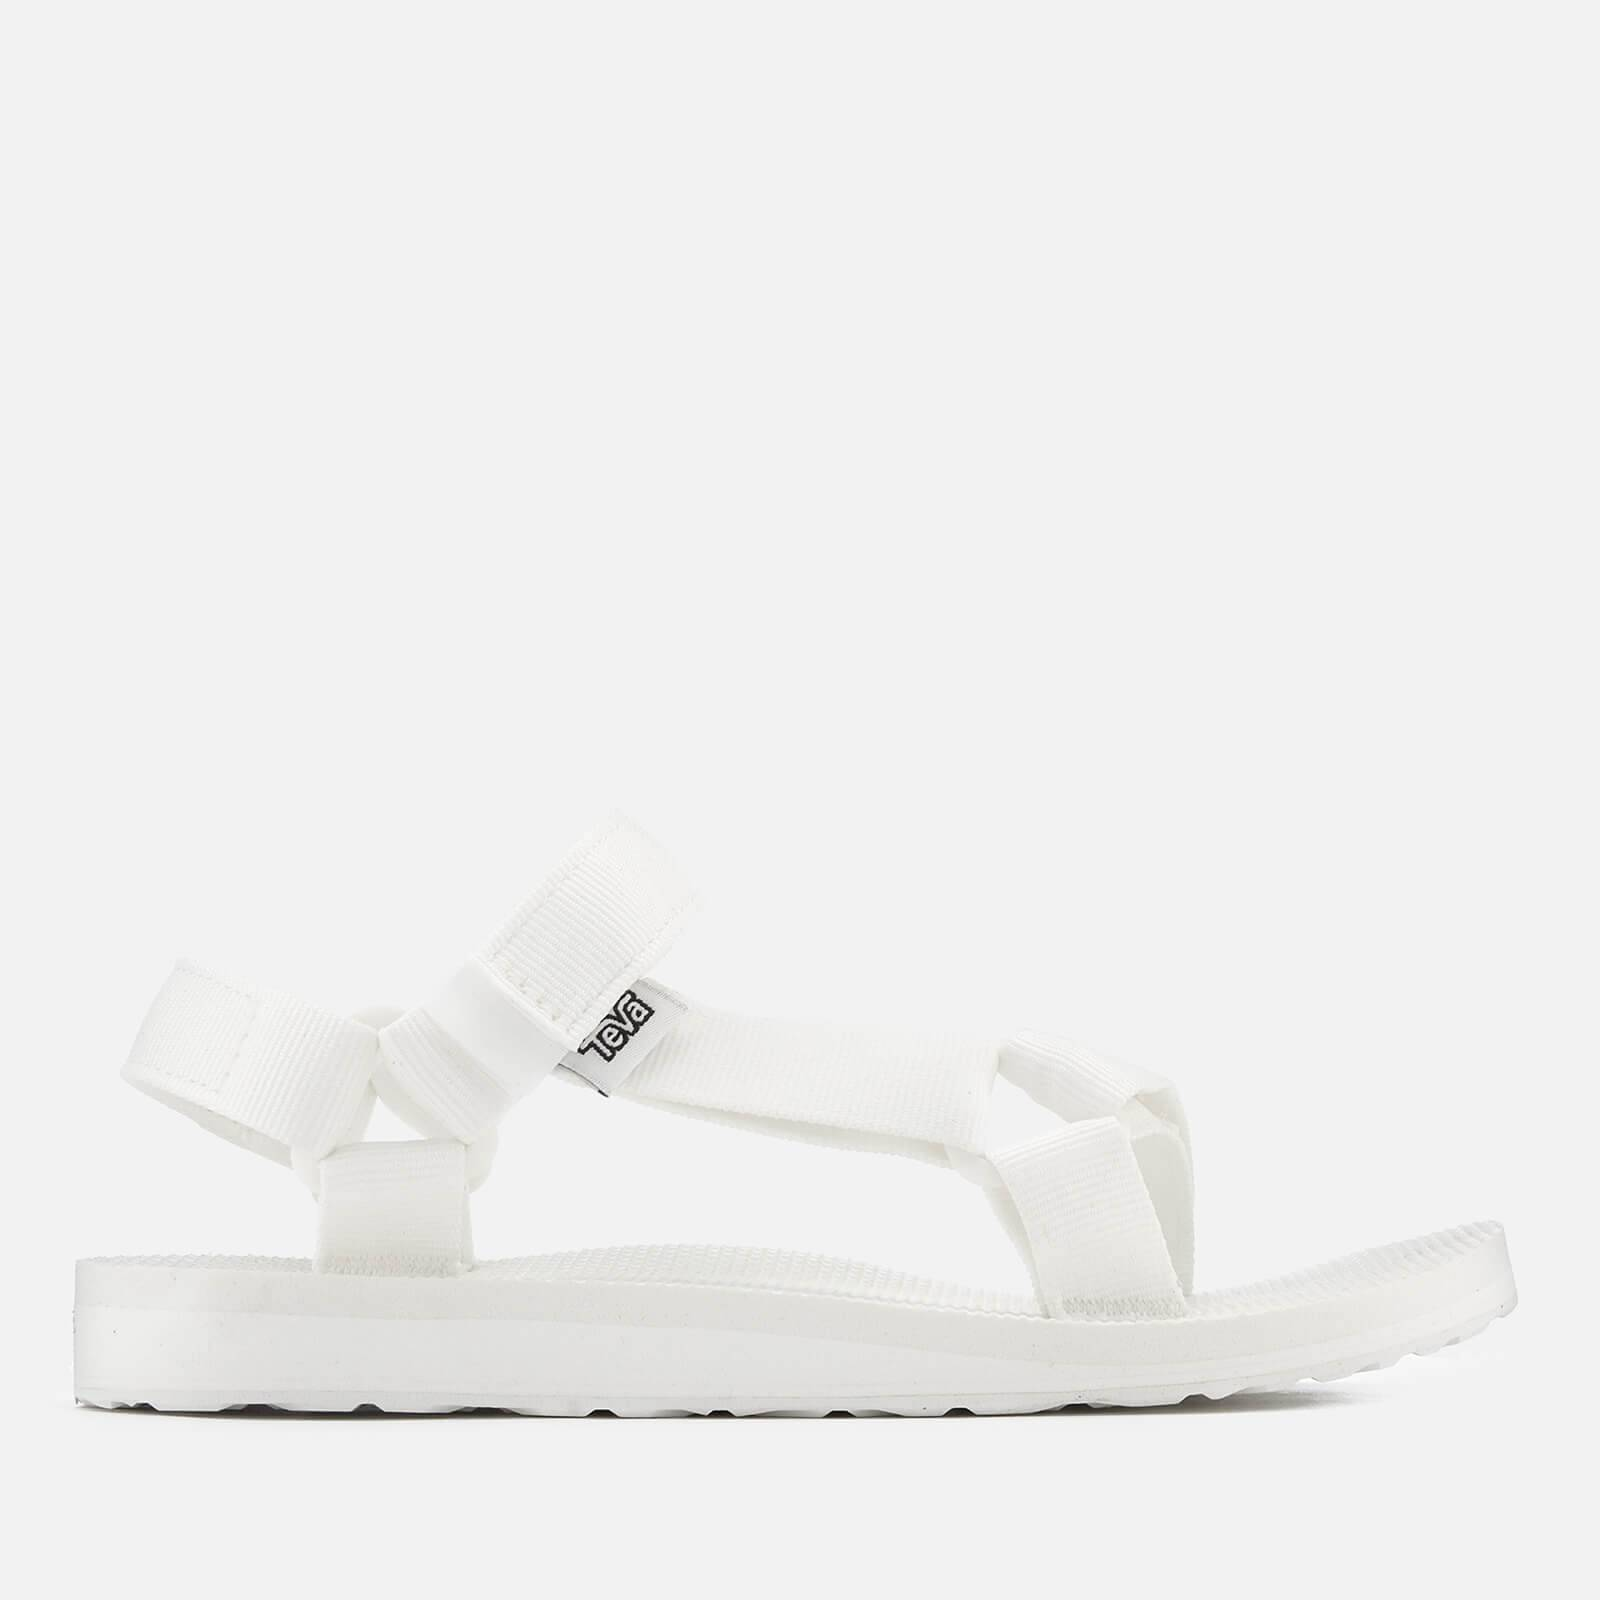 Teva Women's Original Universal Sport Sandals - Bright White - UK 6